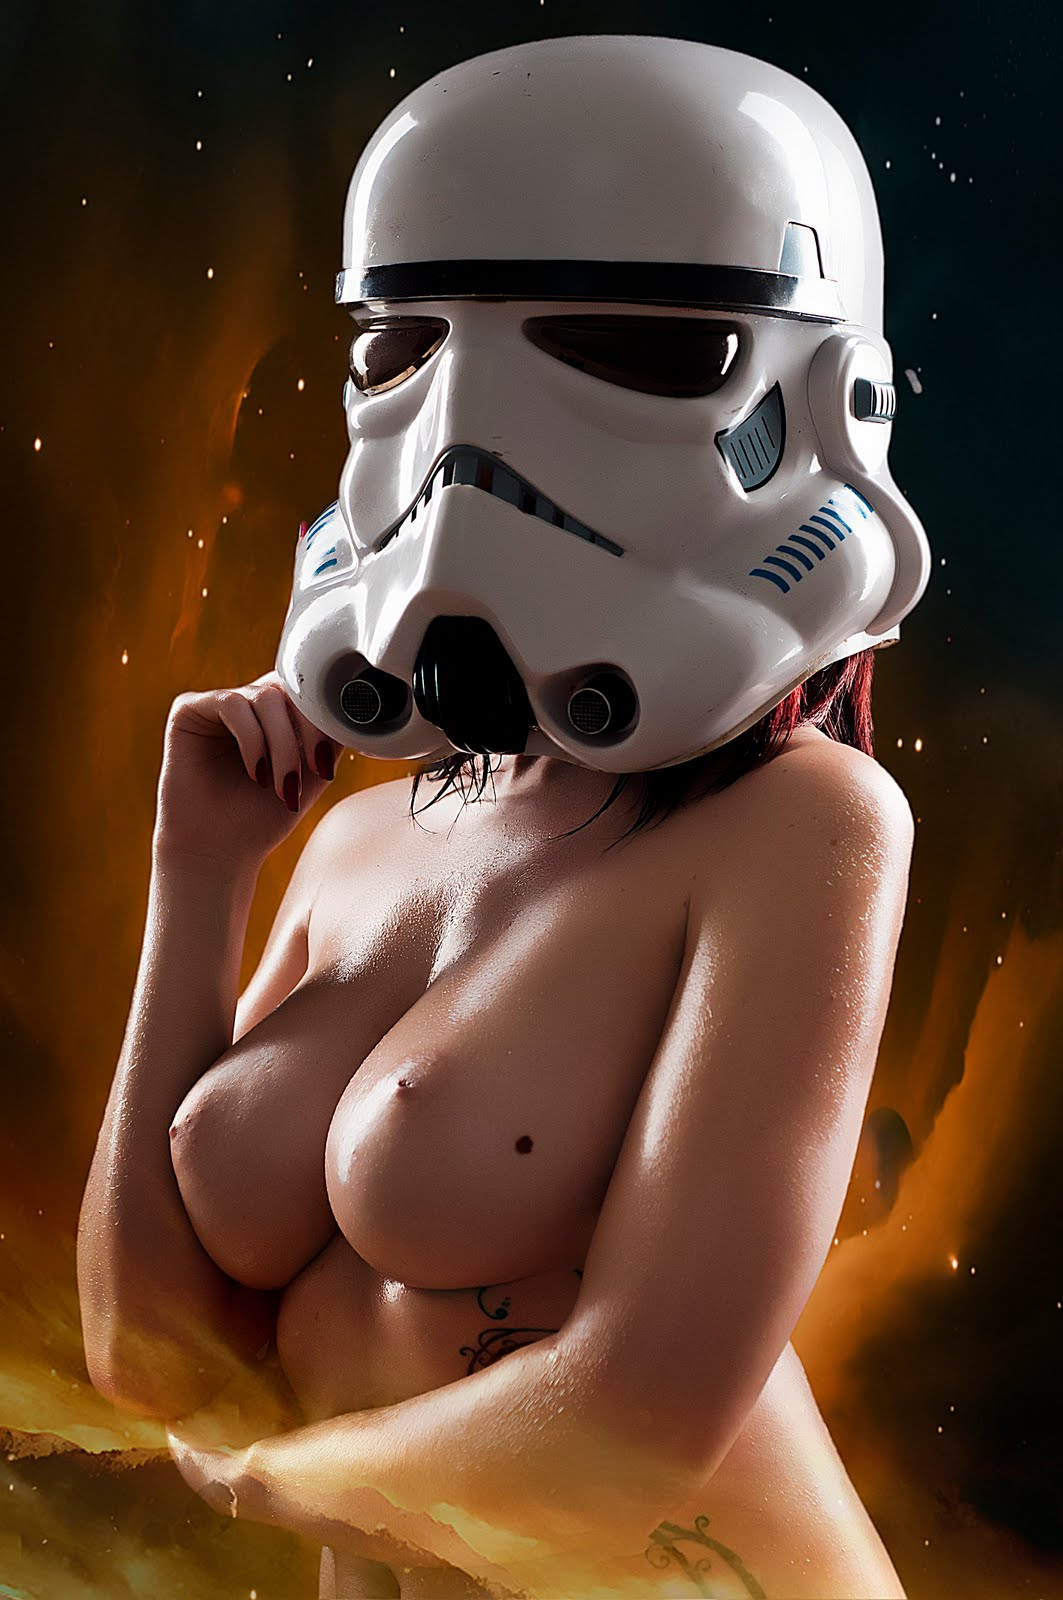 Red girl from star wars naked exposed galleries